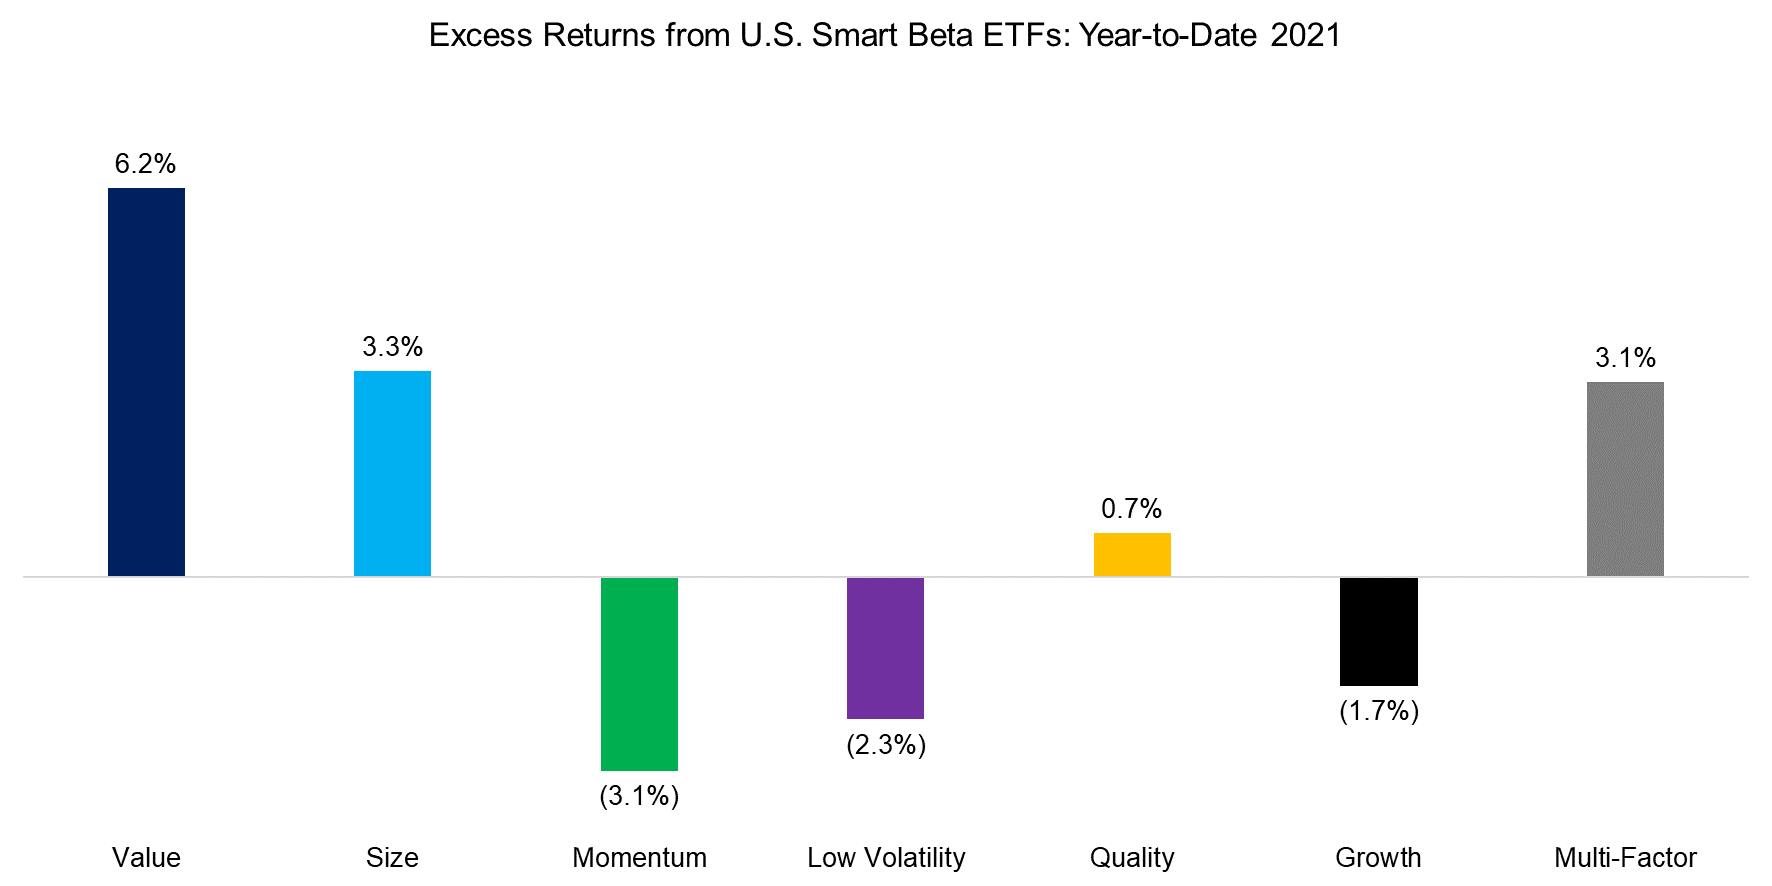 Excess Returns from US Smart Beta ETFs Year-to-Date 2021